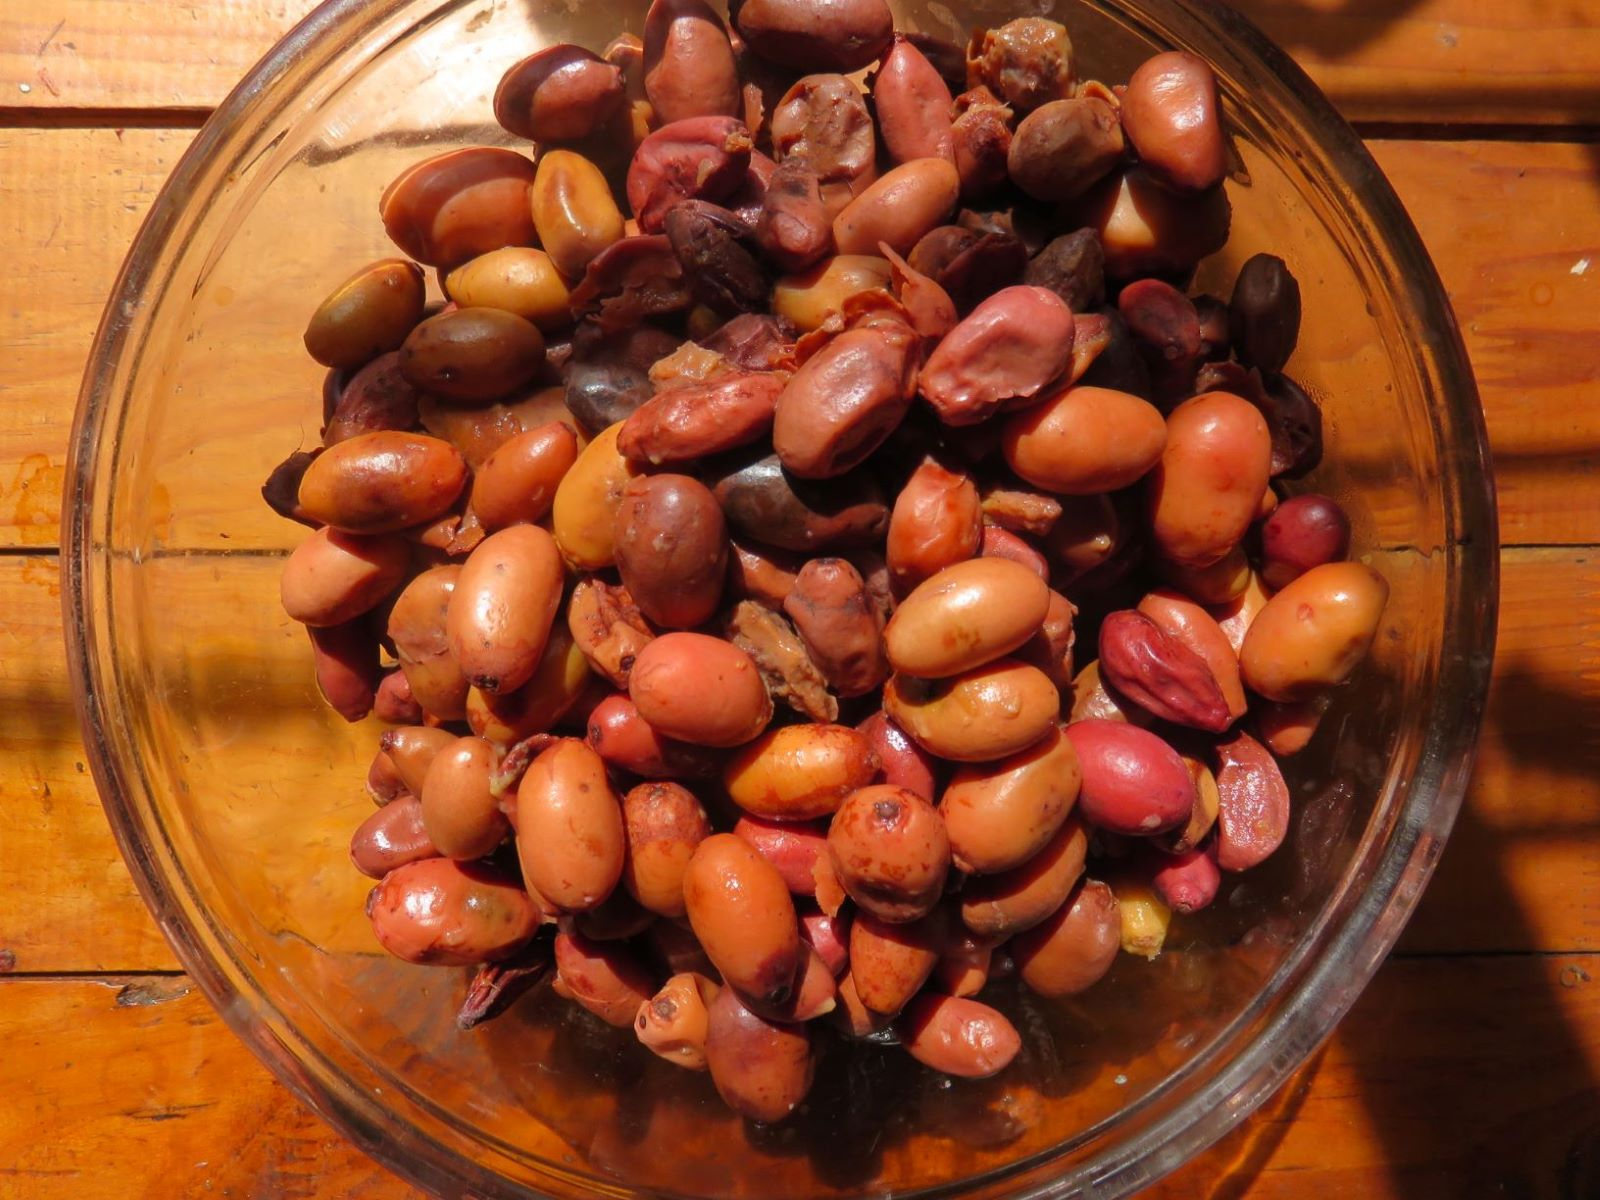 The fruit after fermentation and sorting.